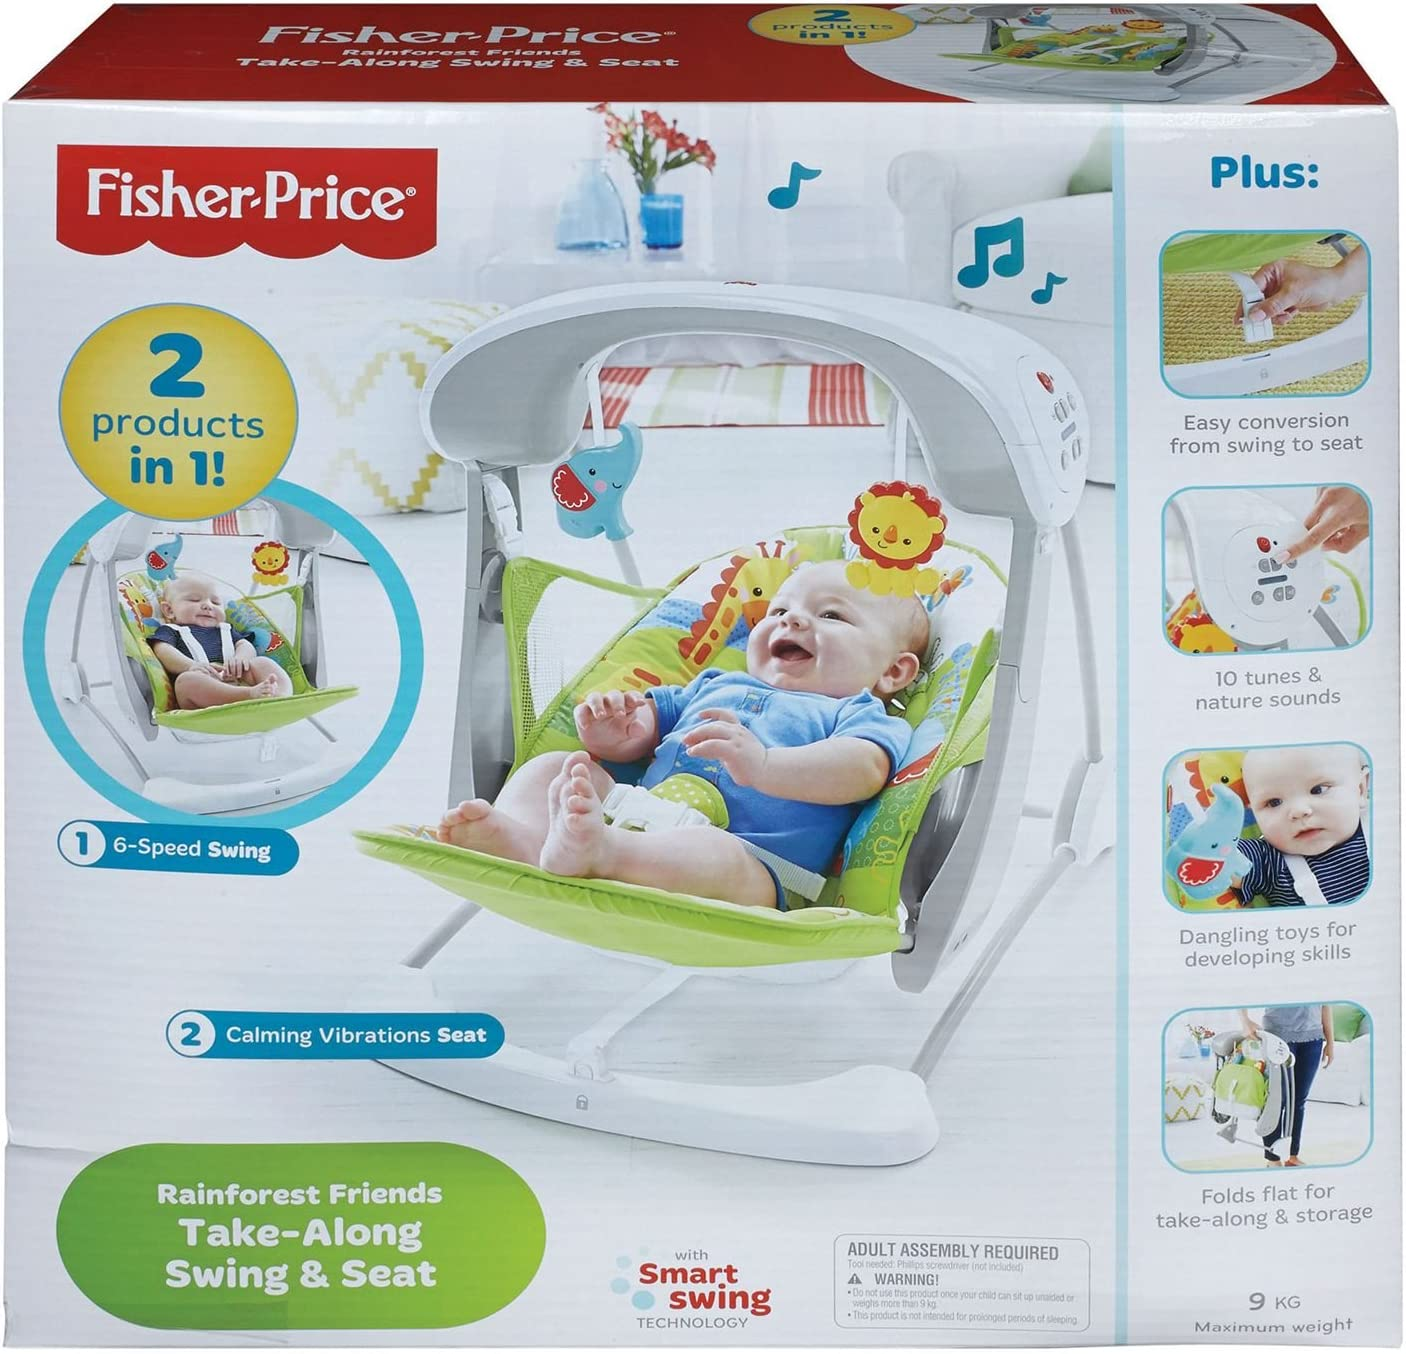 Fisher Price Rainforest Take Along Swing And Seat Set New Born Baby Swing Chair With Calming Vibrations Songs And Sounds Suitable From Birth Amazon Co Uk Baby